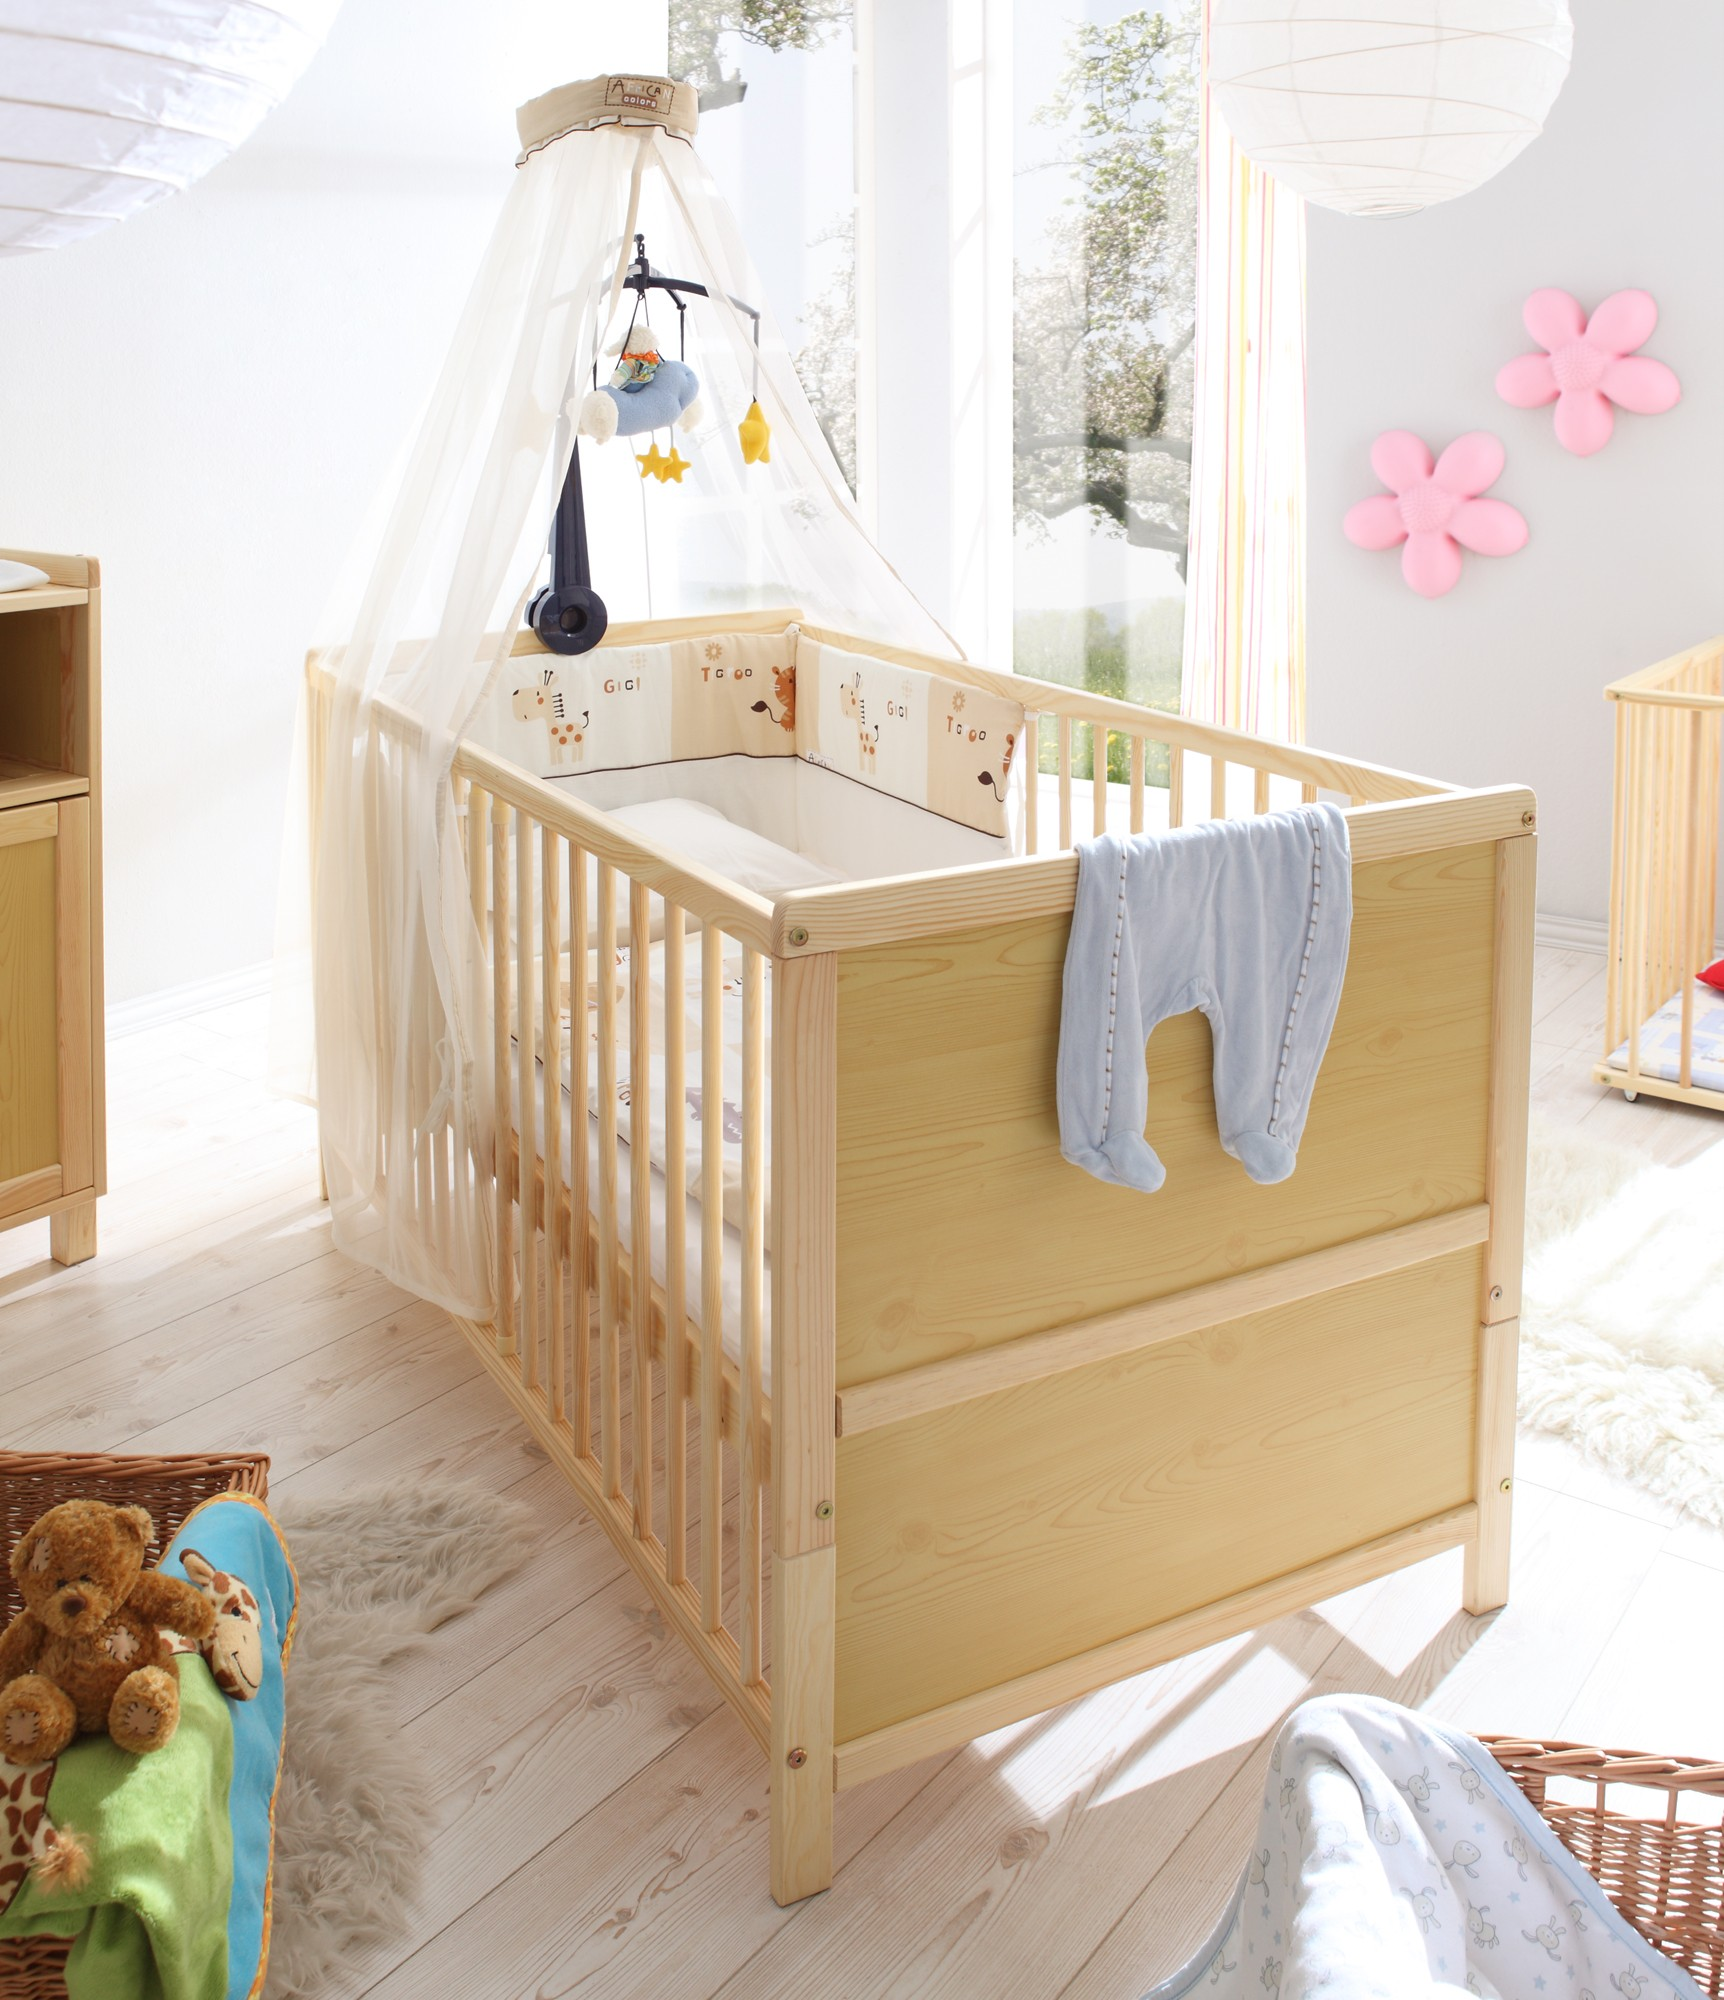 babyzimmer 2 teilig kiefer natur h c m bel. Black Bedroom Furniture Sets. Home Design Ideas